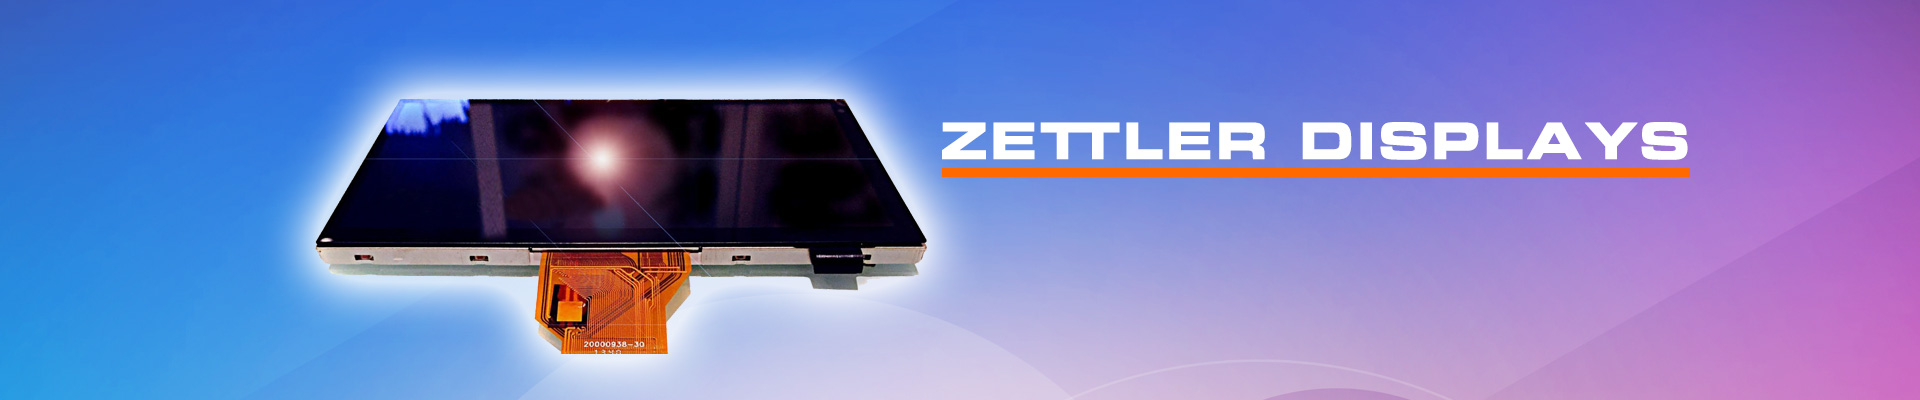 ZETTLER Group Displays